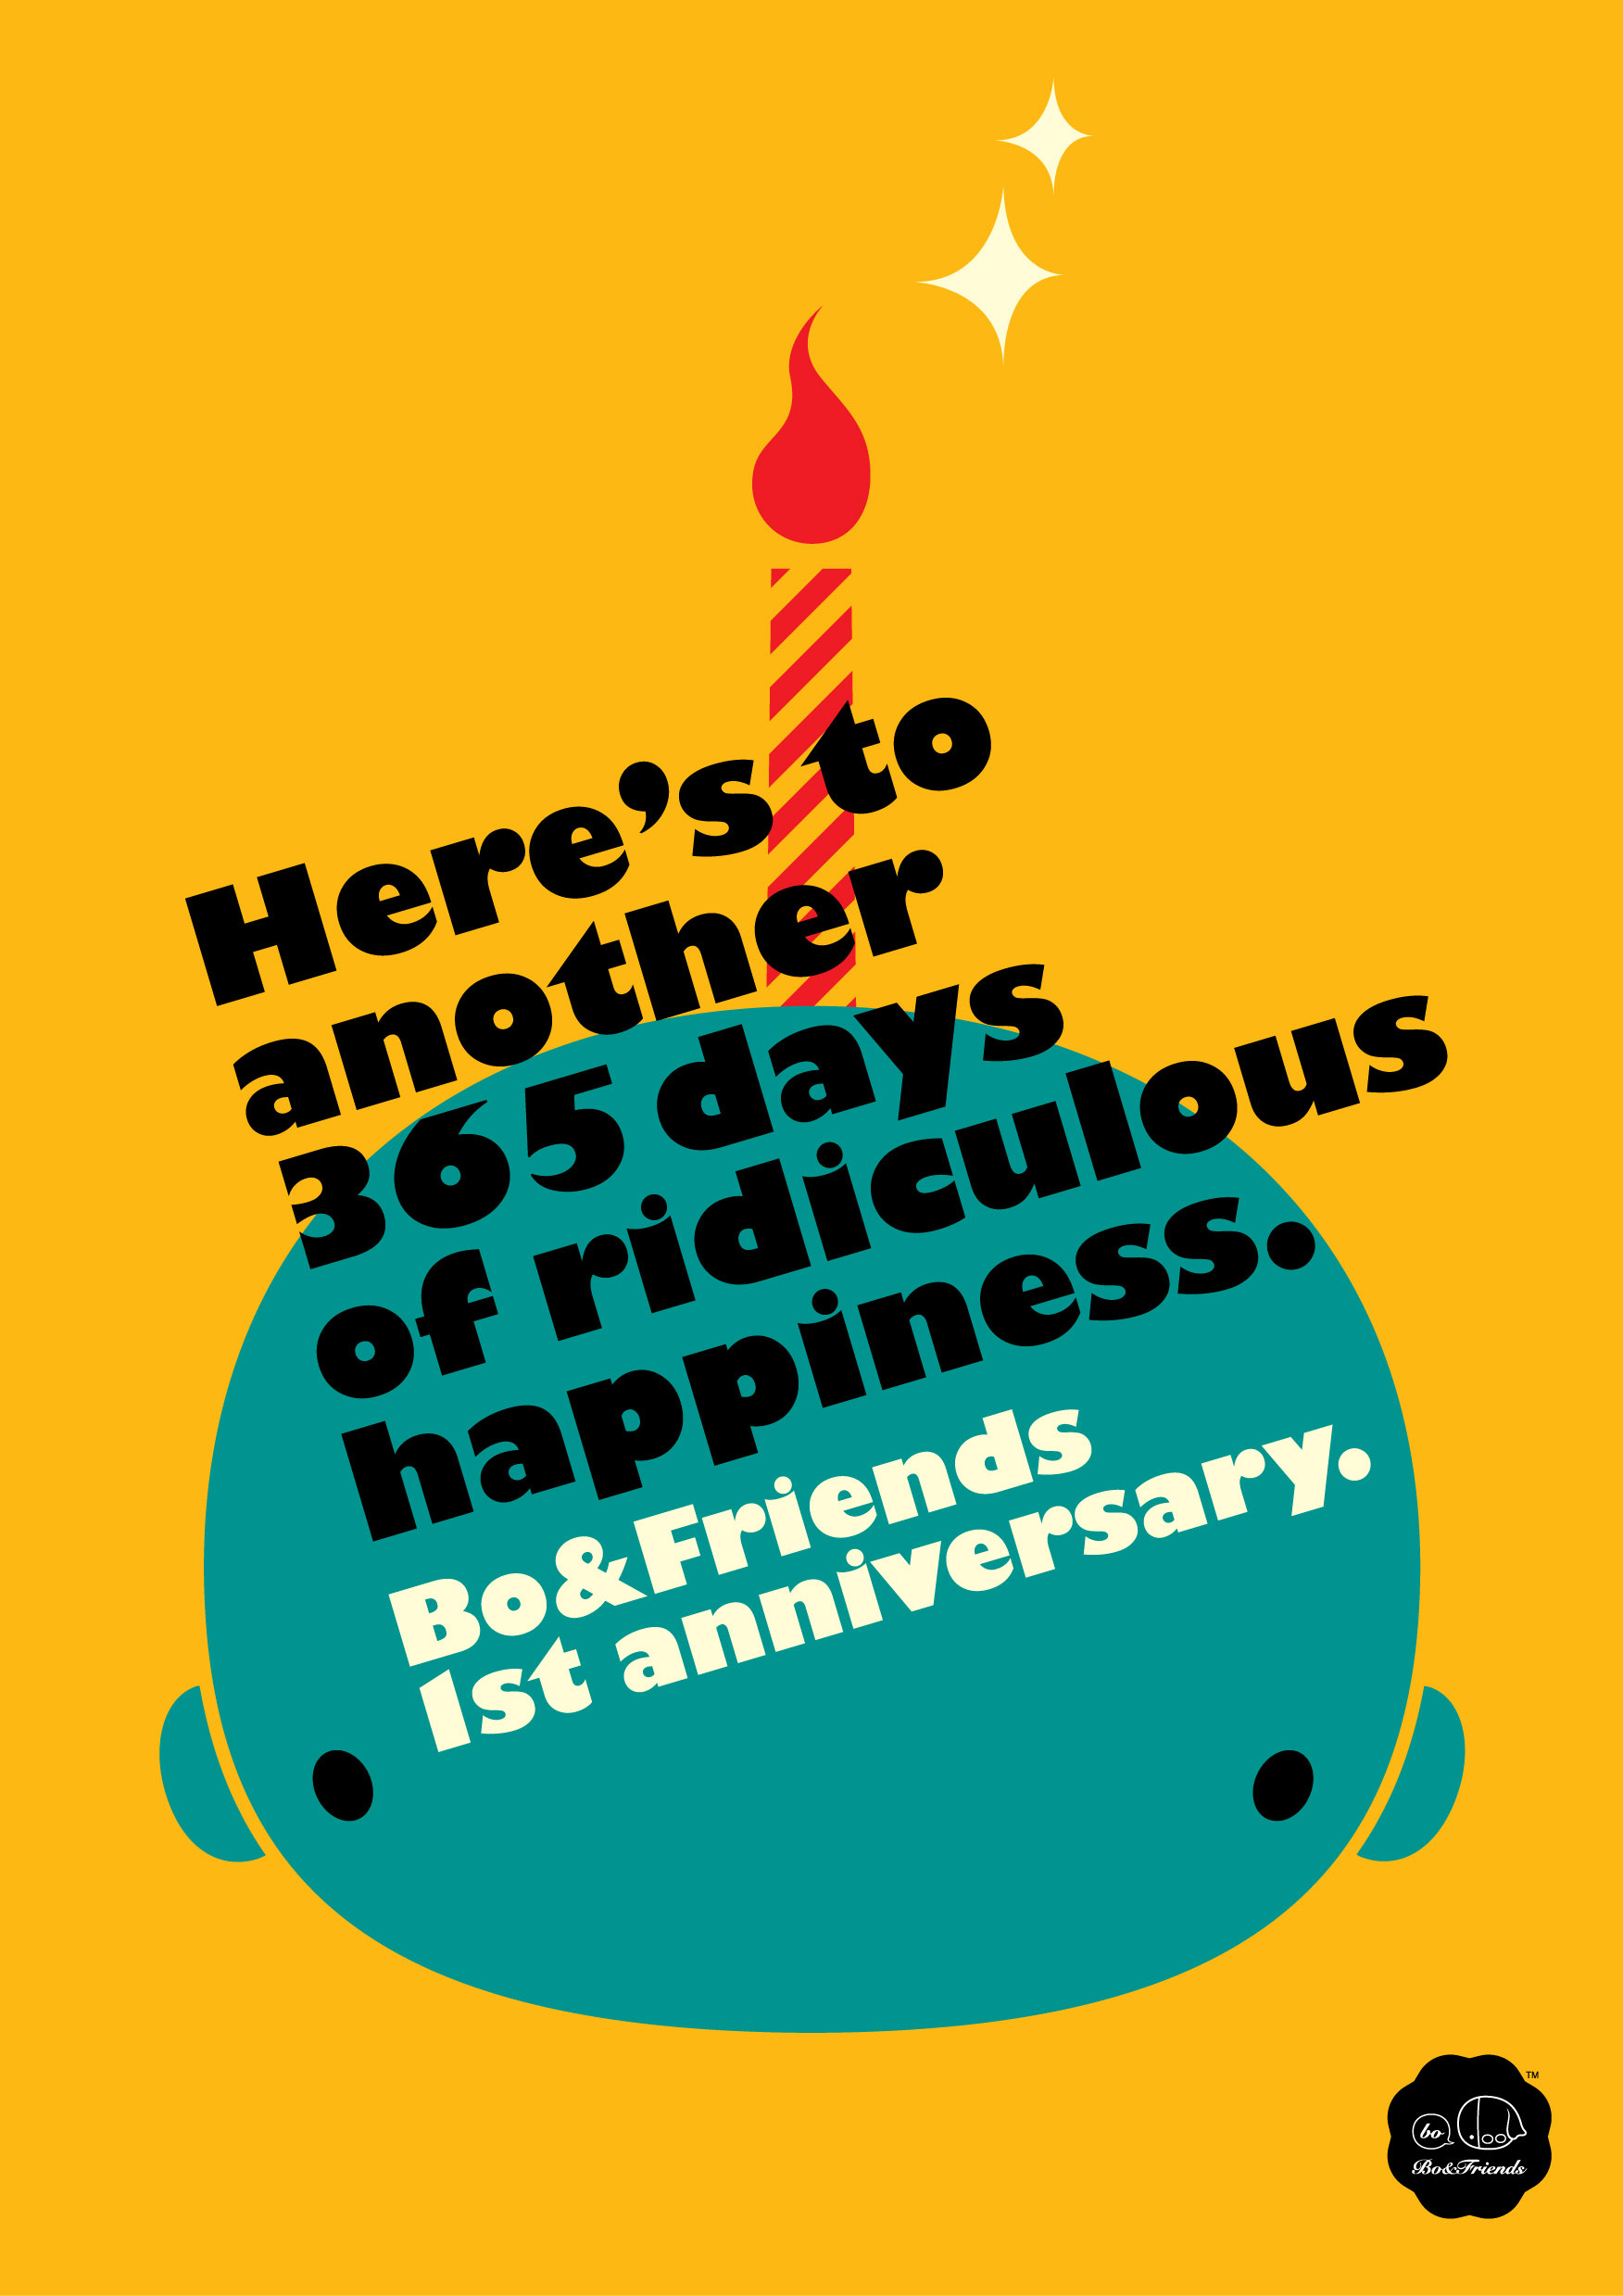 1752x2478 Happy 1st Anniversary, Boampfriends! Kamwei